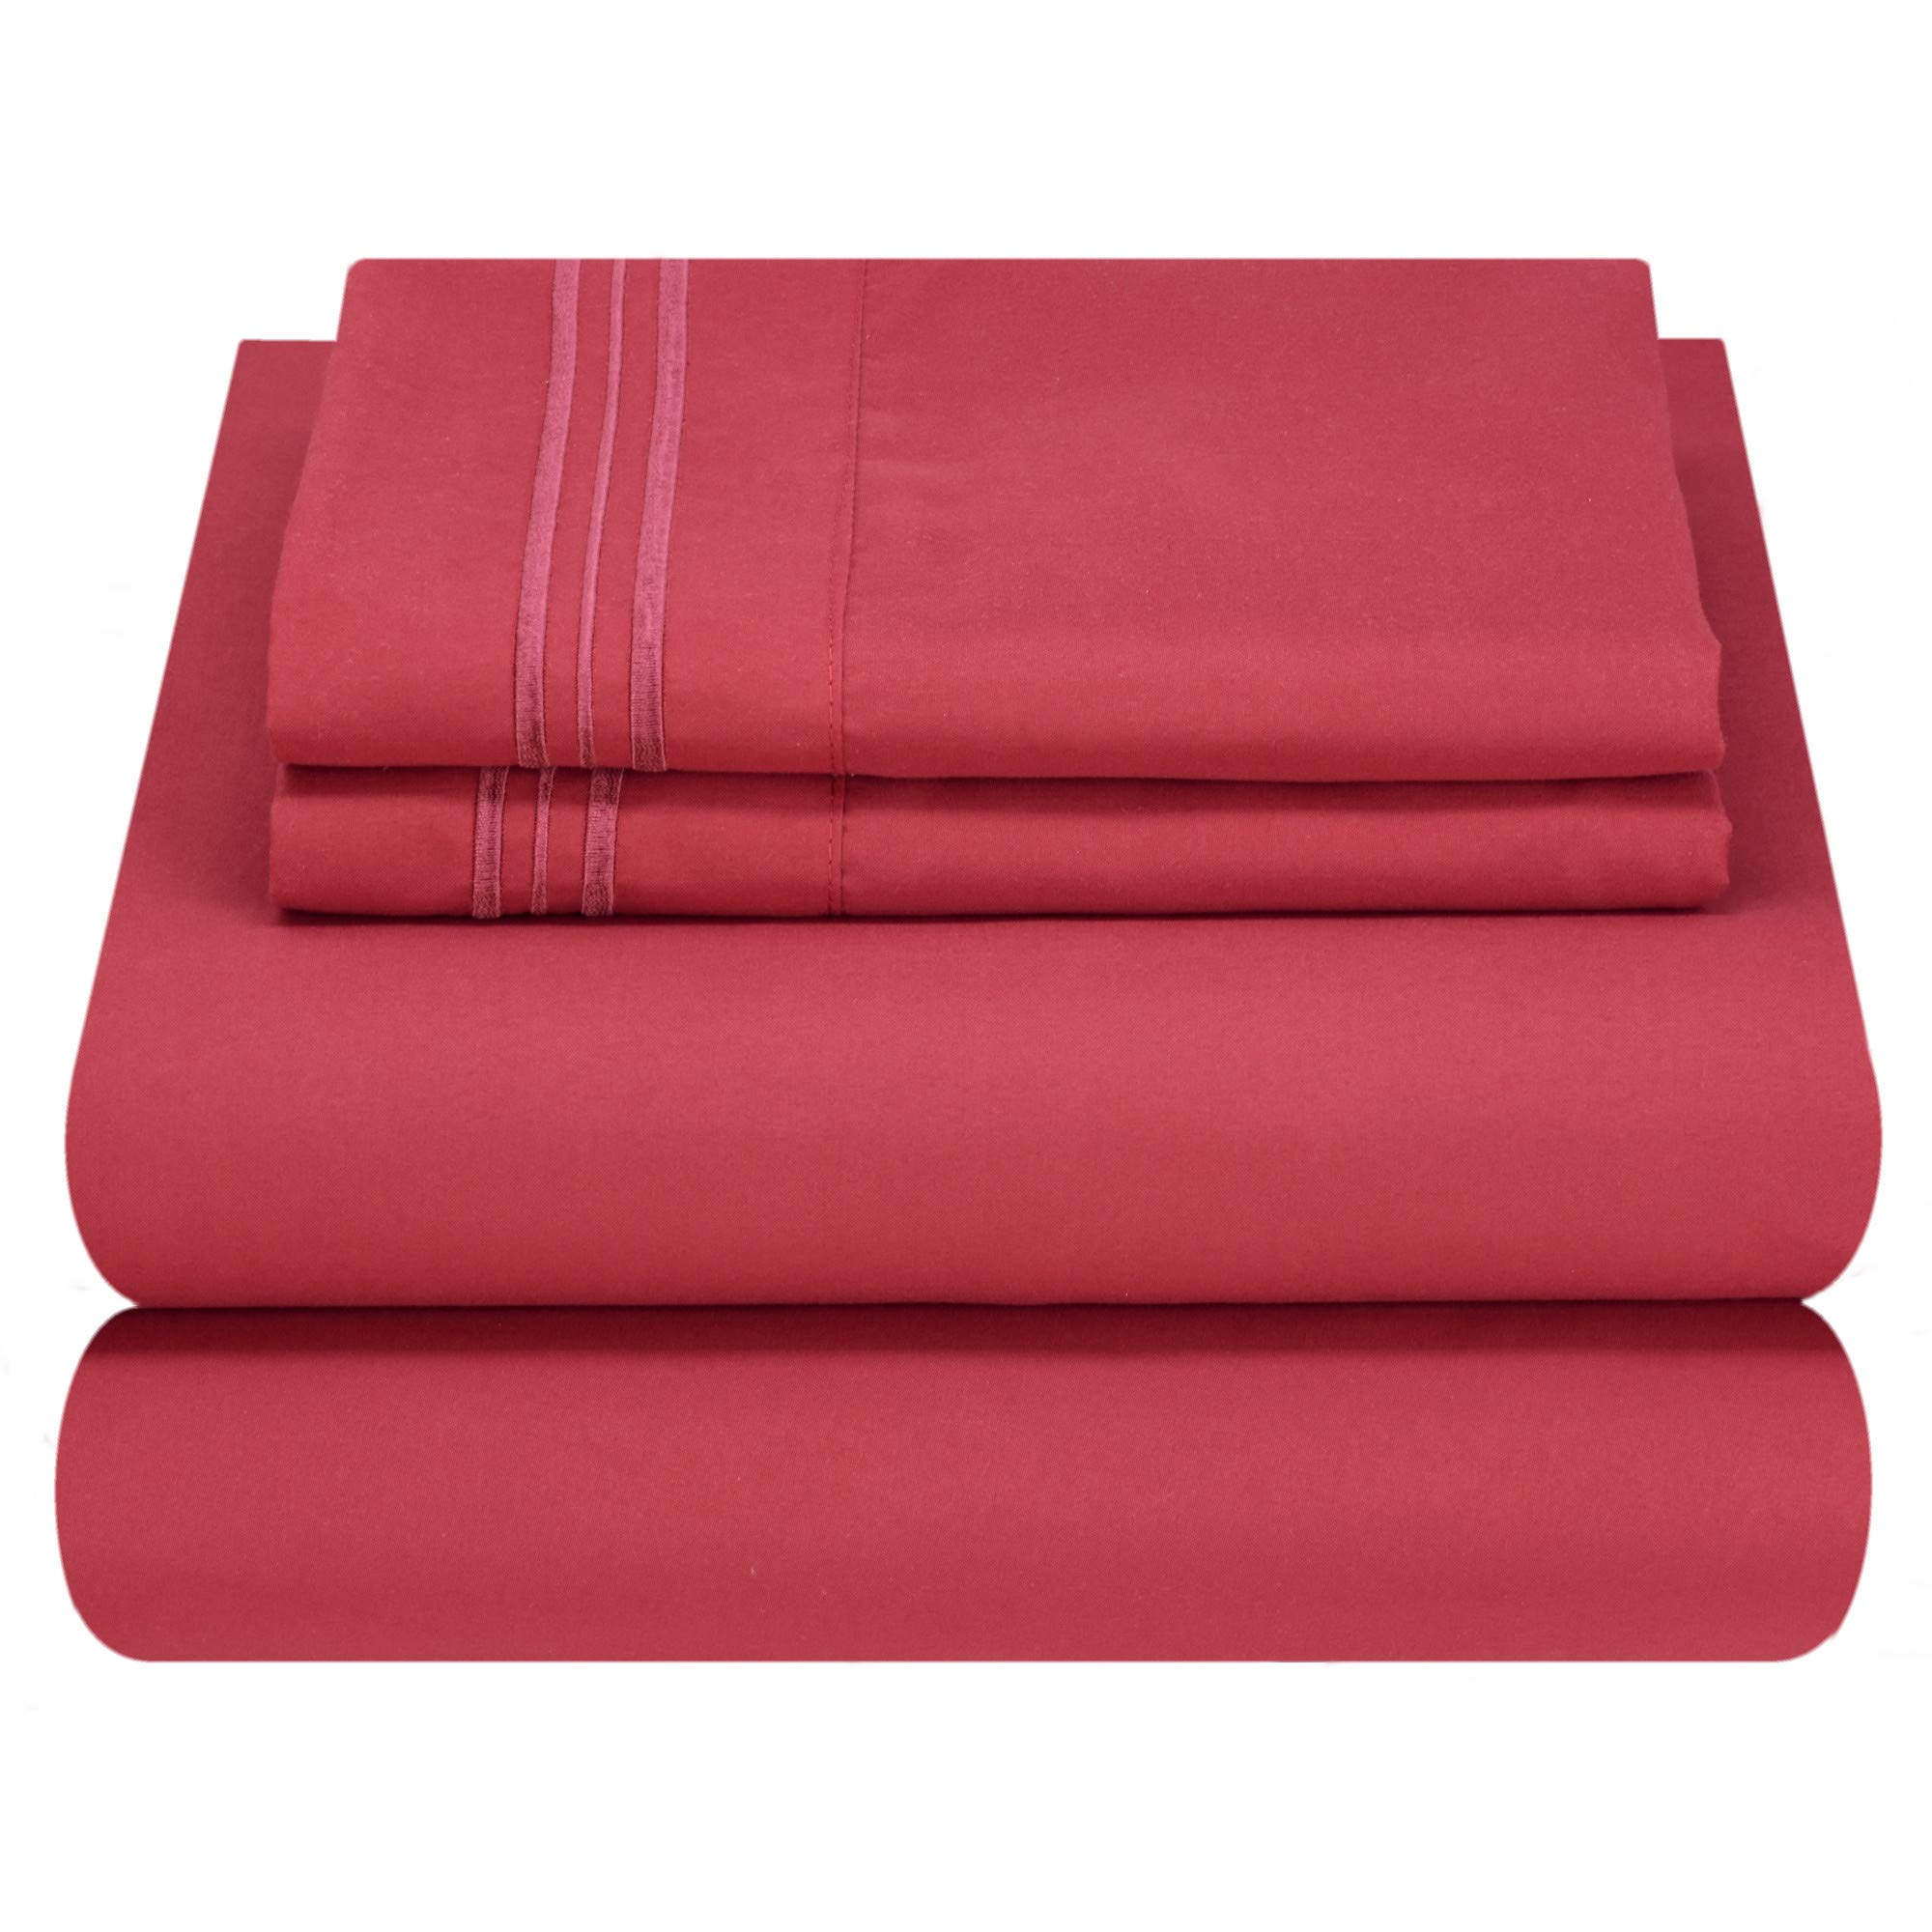 Mezzati Luxury Bed Sheet Set - Soft and Comfortable 1800 Prestige Collection - Brushed Microfiber Bedding (Burgundy, Twin XL Size)